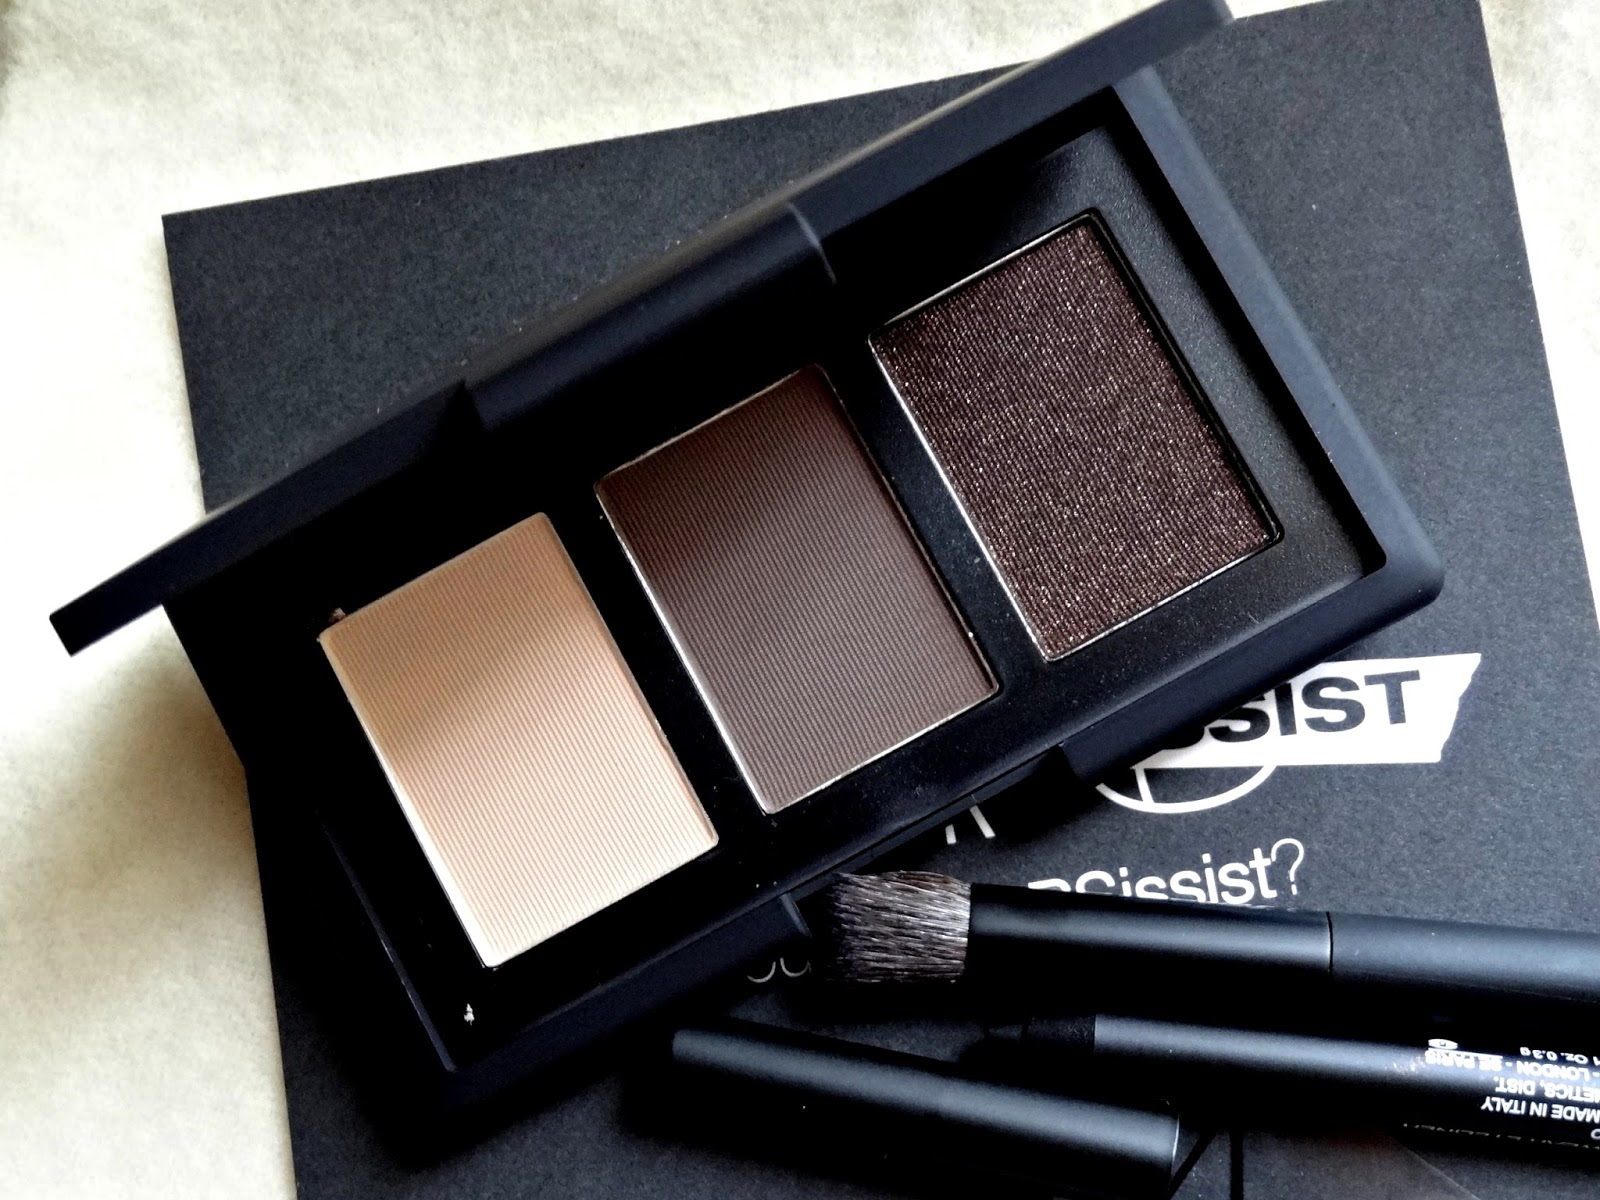 The NARSissist Smokey Eye Kit